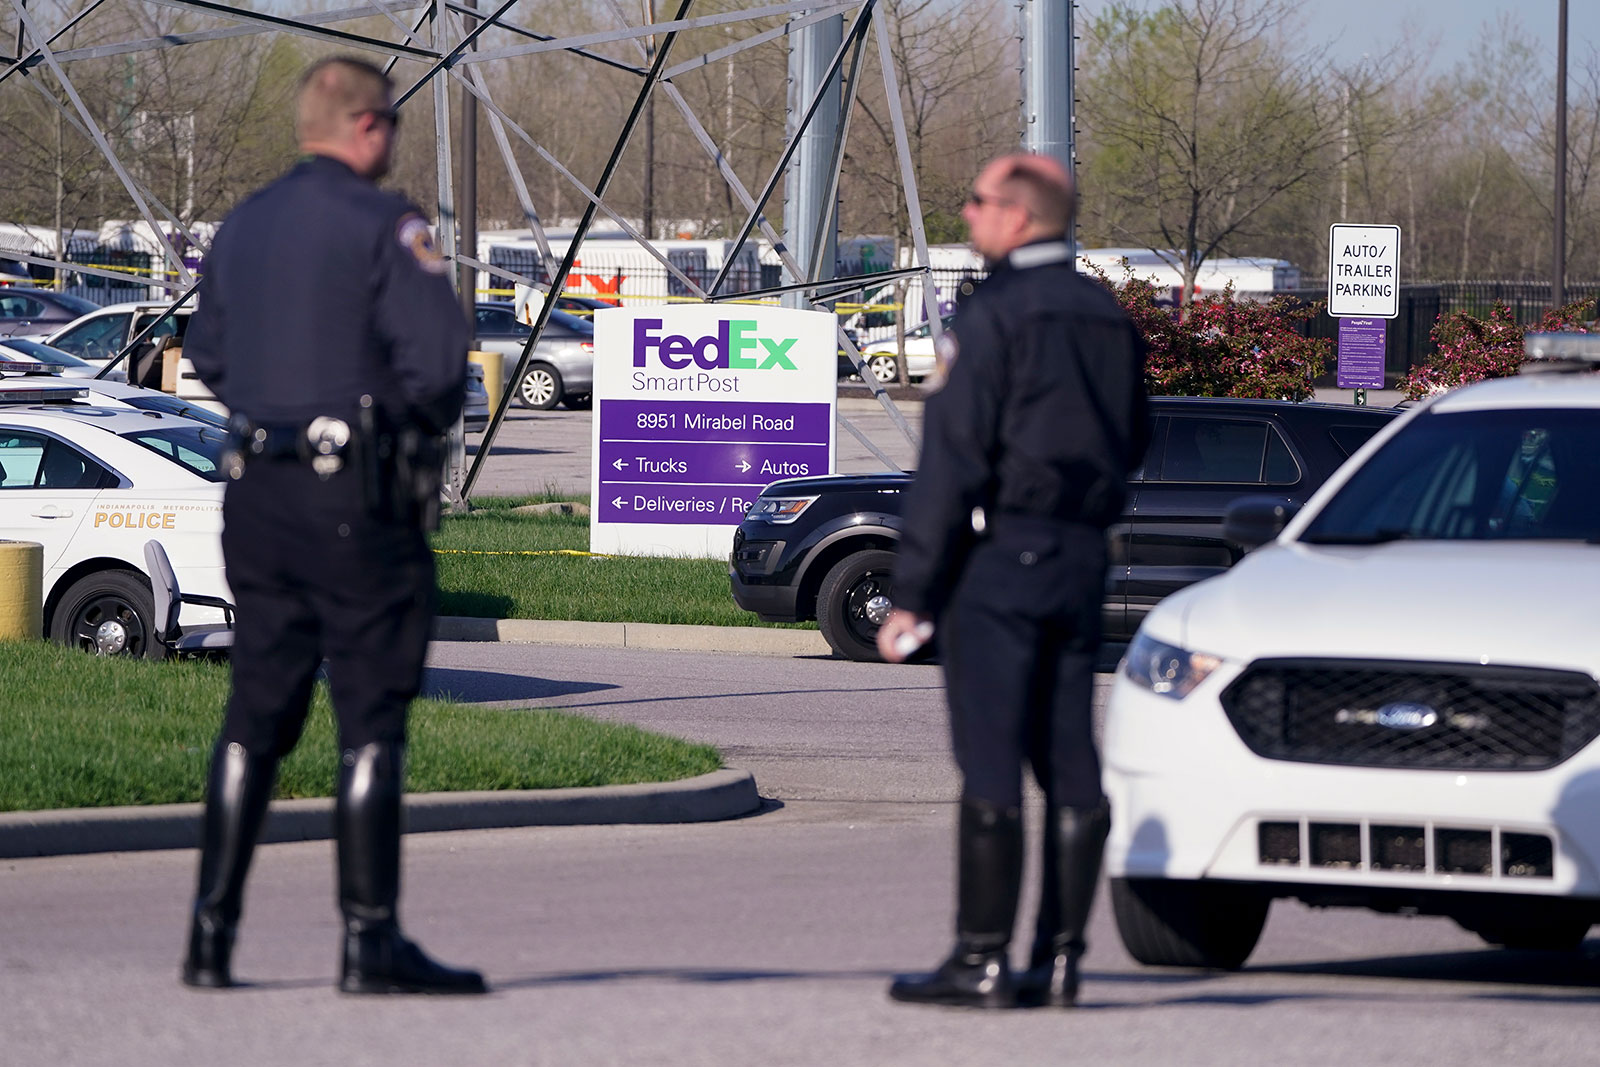 Police stand outside the Indianapolis FedEx facility on Friday morning.